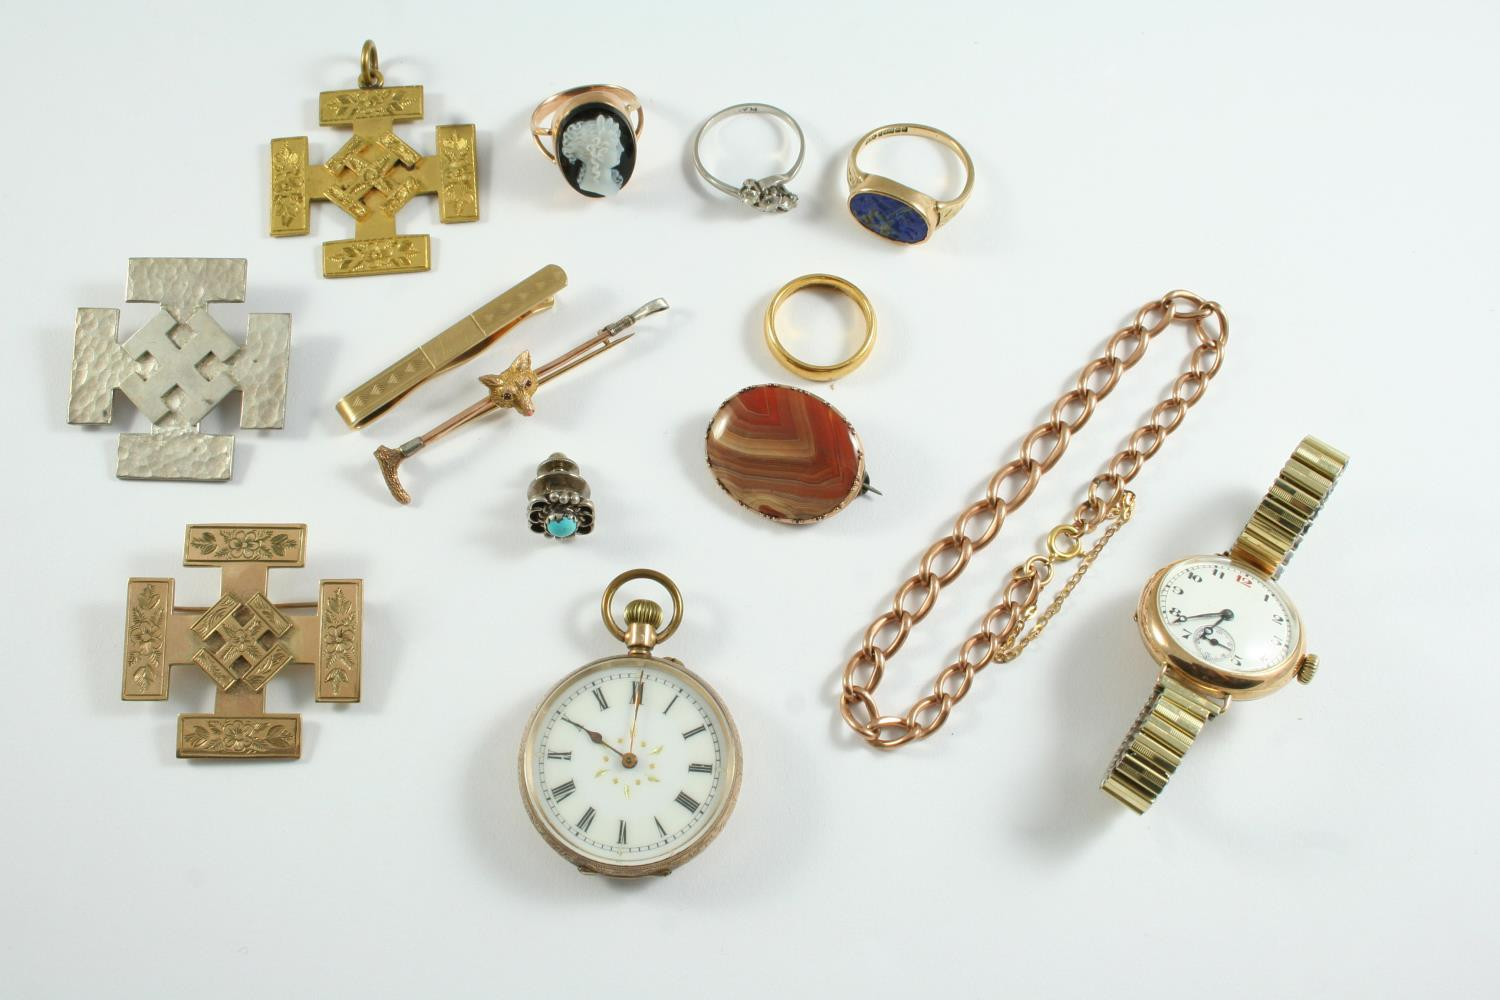 A QUANTITY OF JEWELLERY including a 22ct gold wedding band, 6.4 grams, a 14ct gold open faced pocket